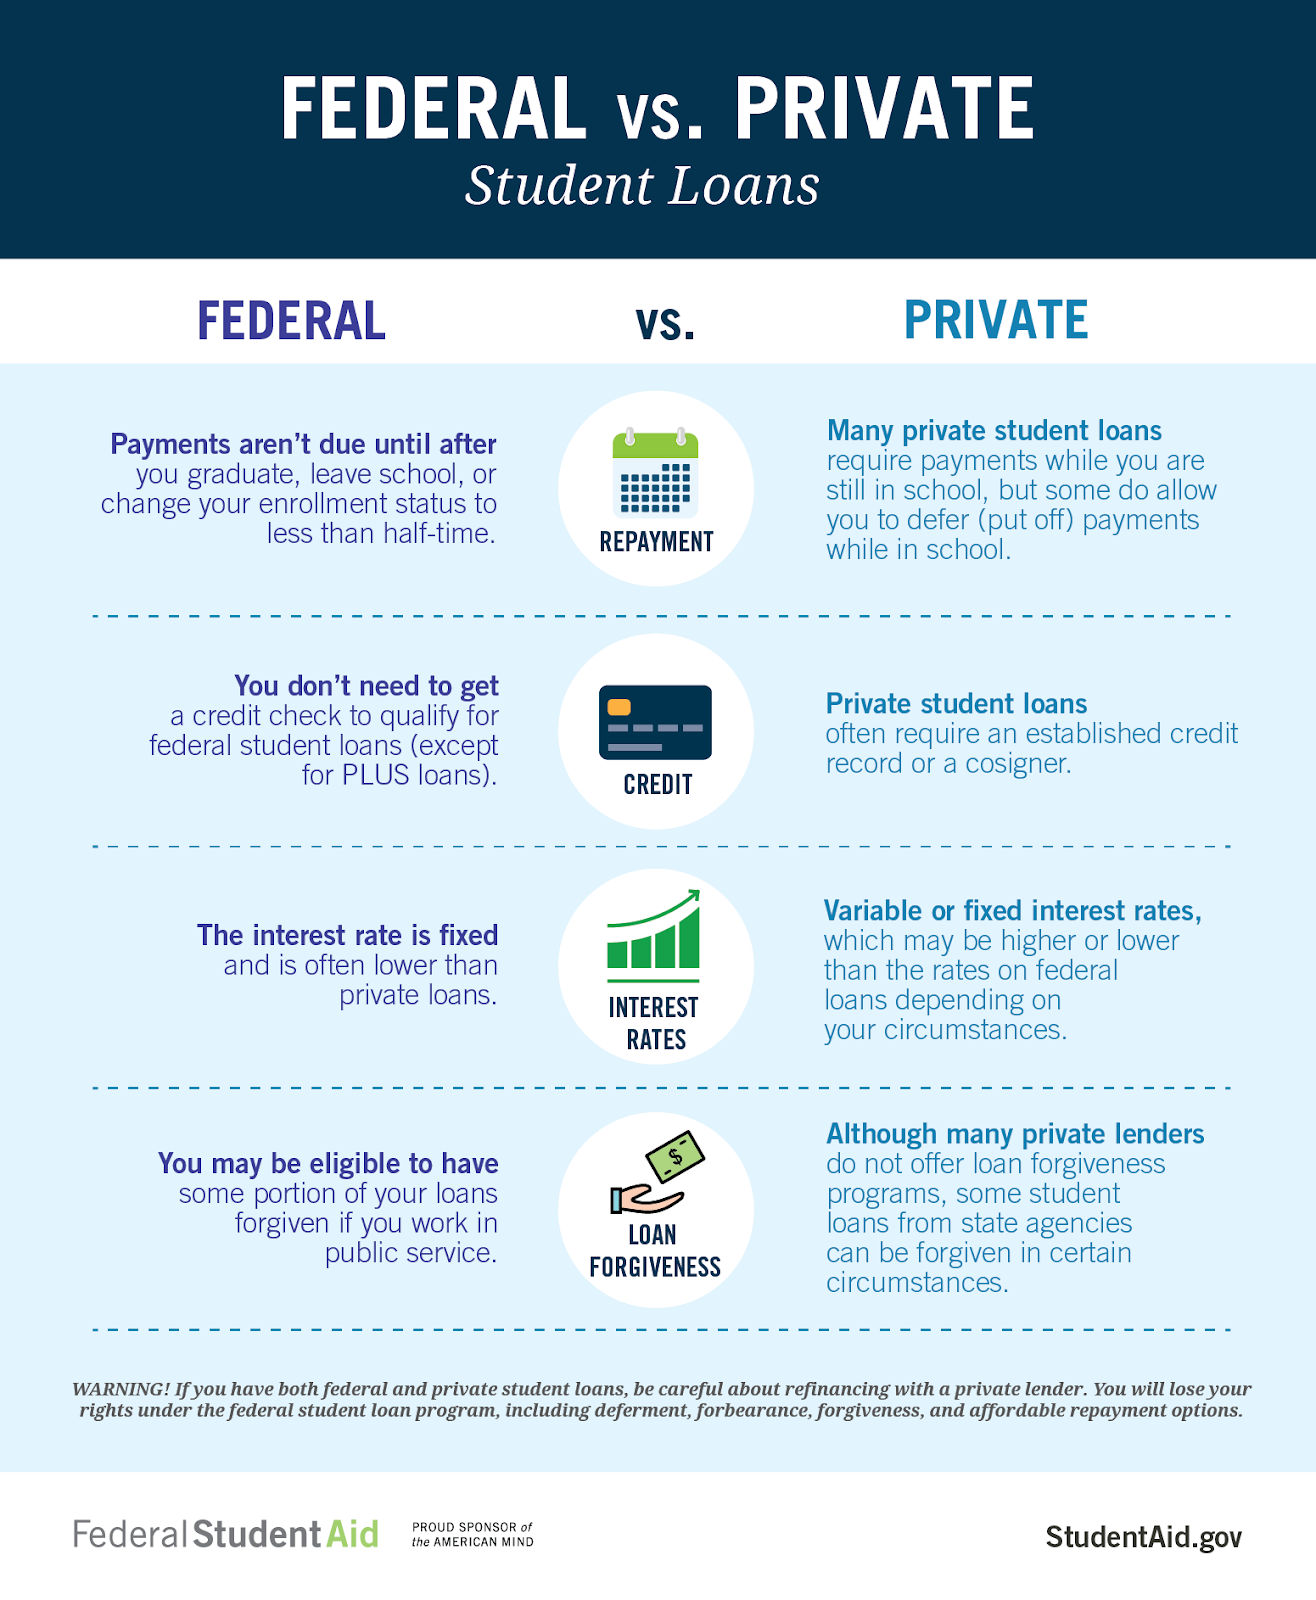 Federal Student Aid table showing key differences between federal student loans and private student loans.